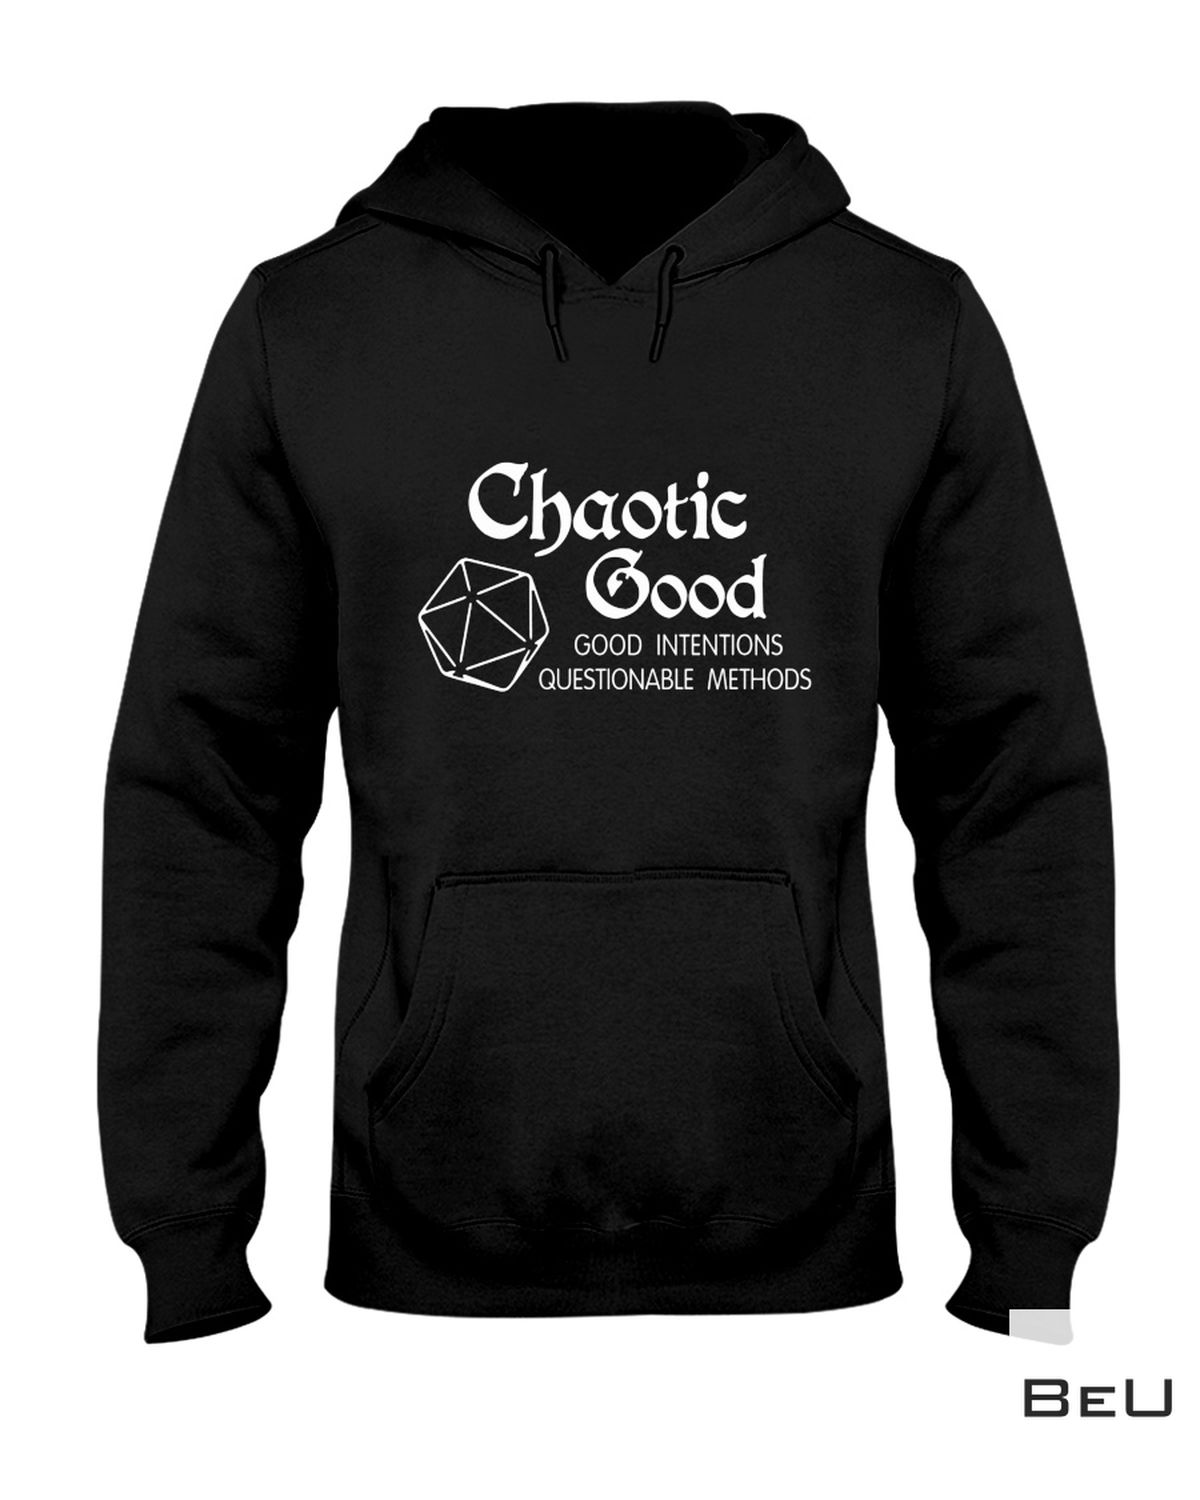 All Over Print Chaotic Good Good Intentions Questionable Methods Shirt, hoodie, tank top